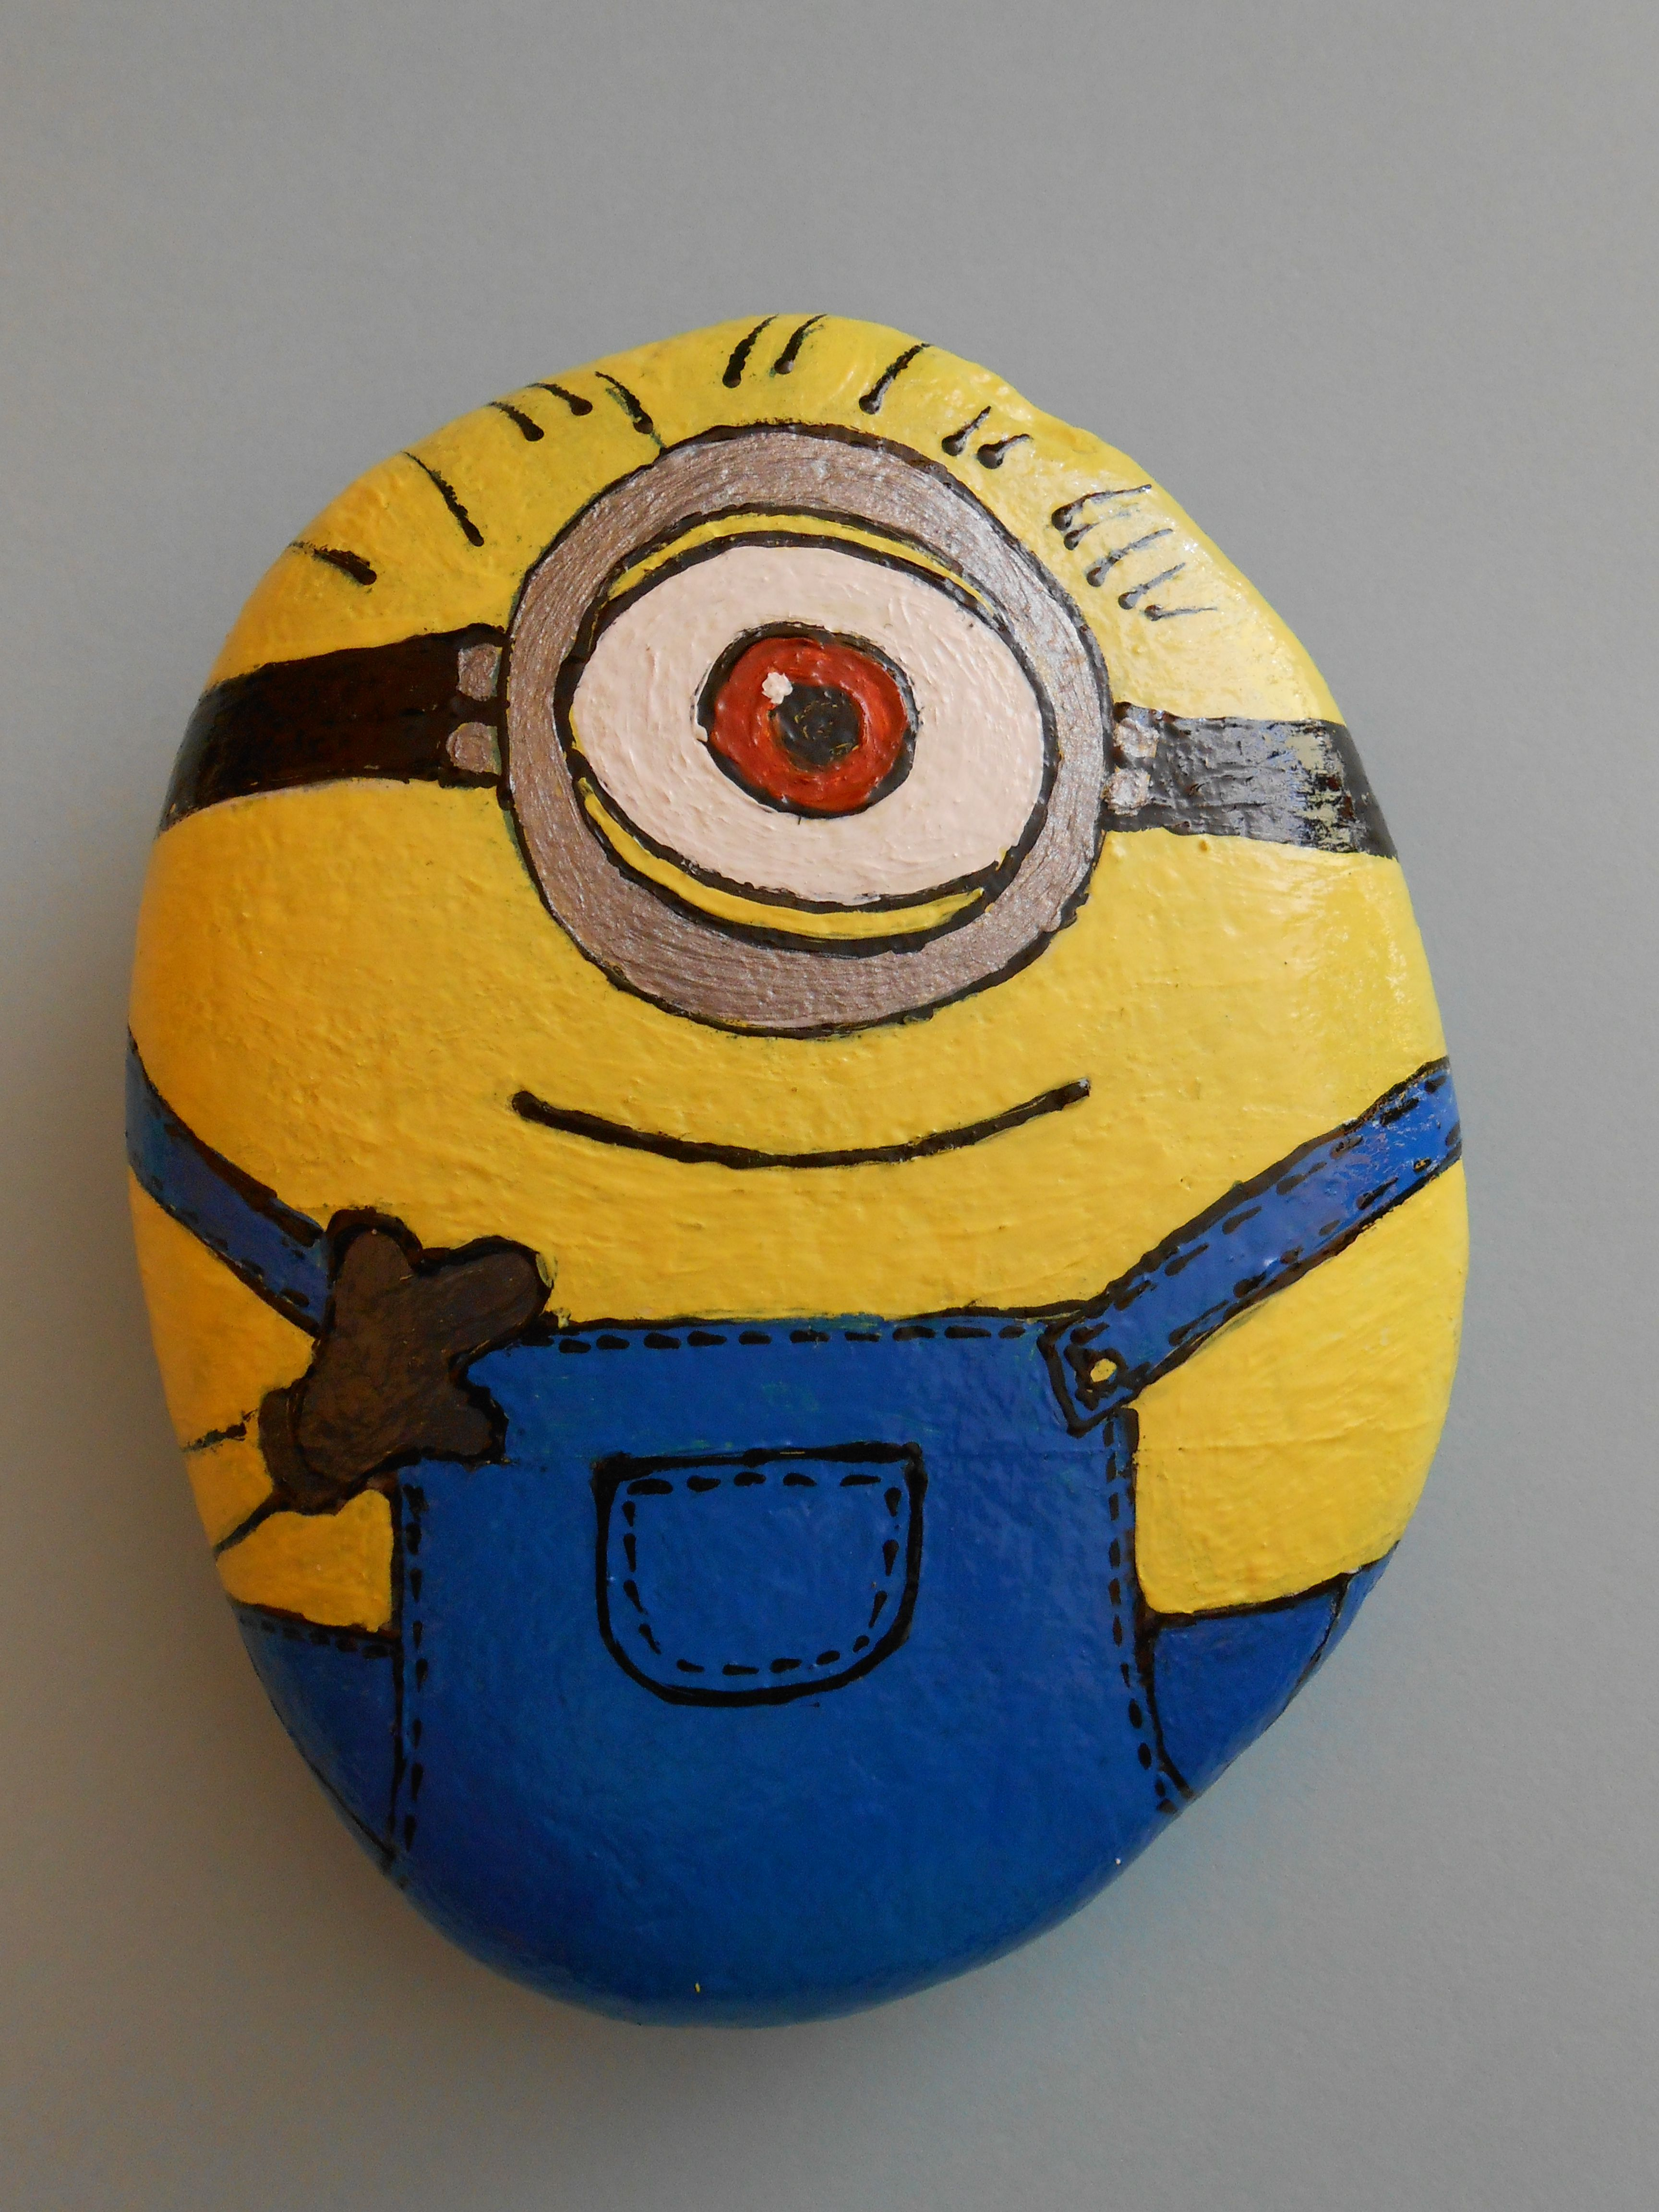 Painted Minion Pumpkins Four Minion Rocks Painted By Godsglitter On Etsy Painted Rocks